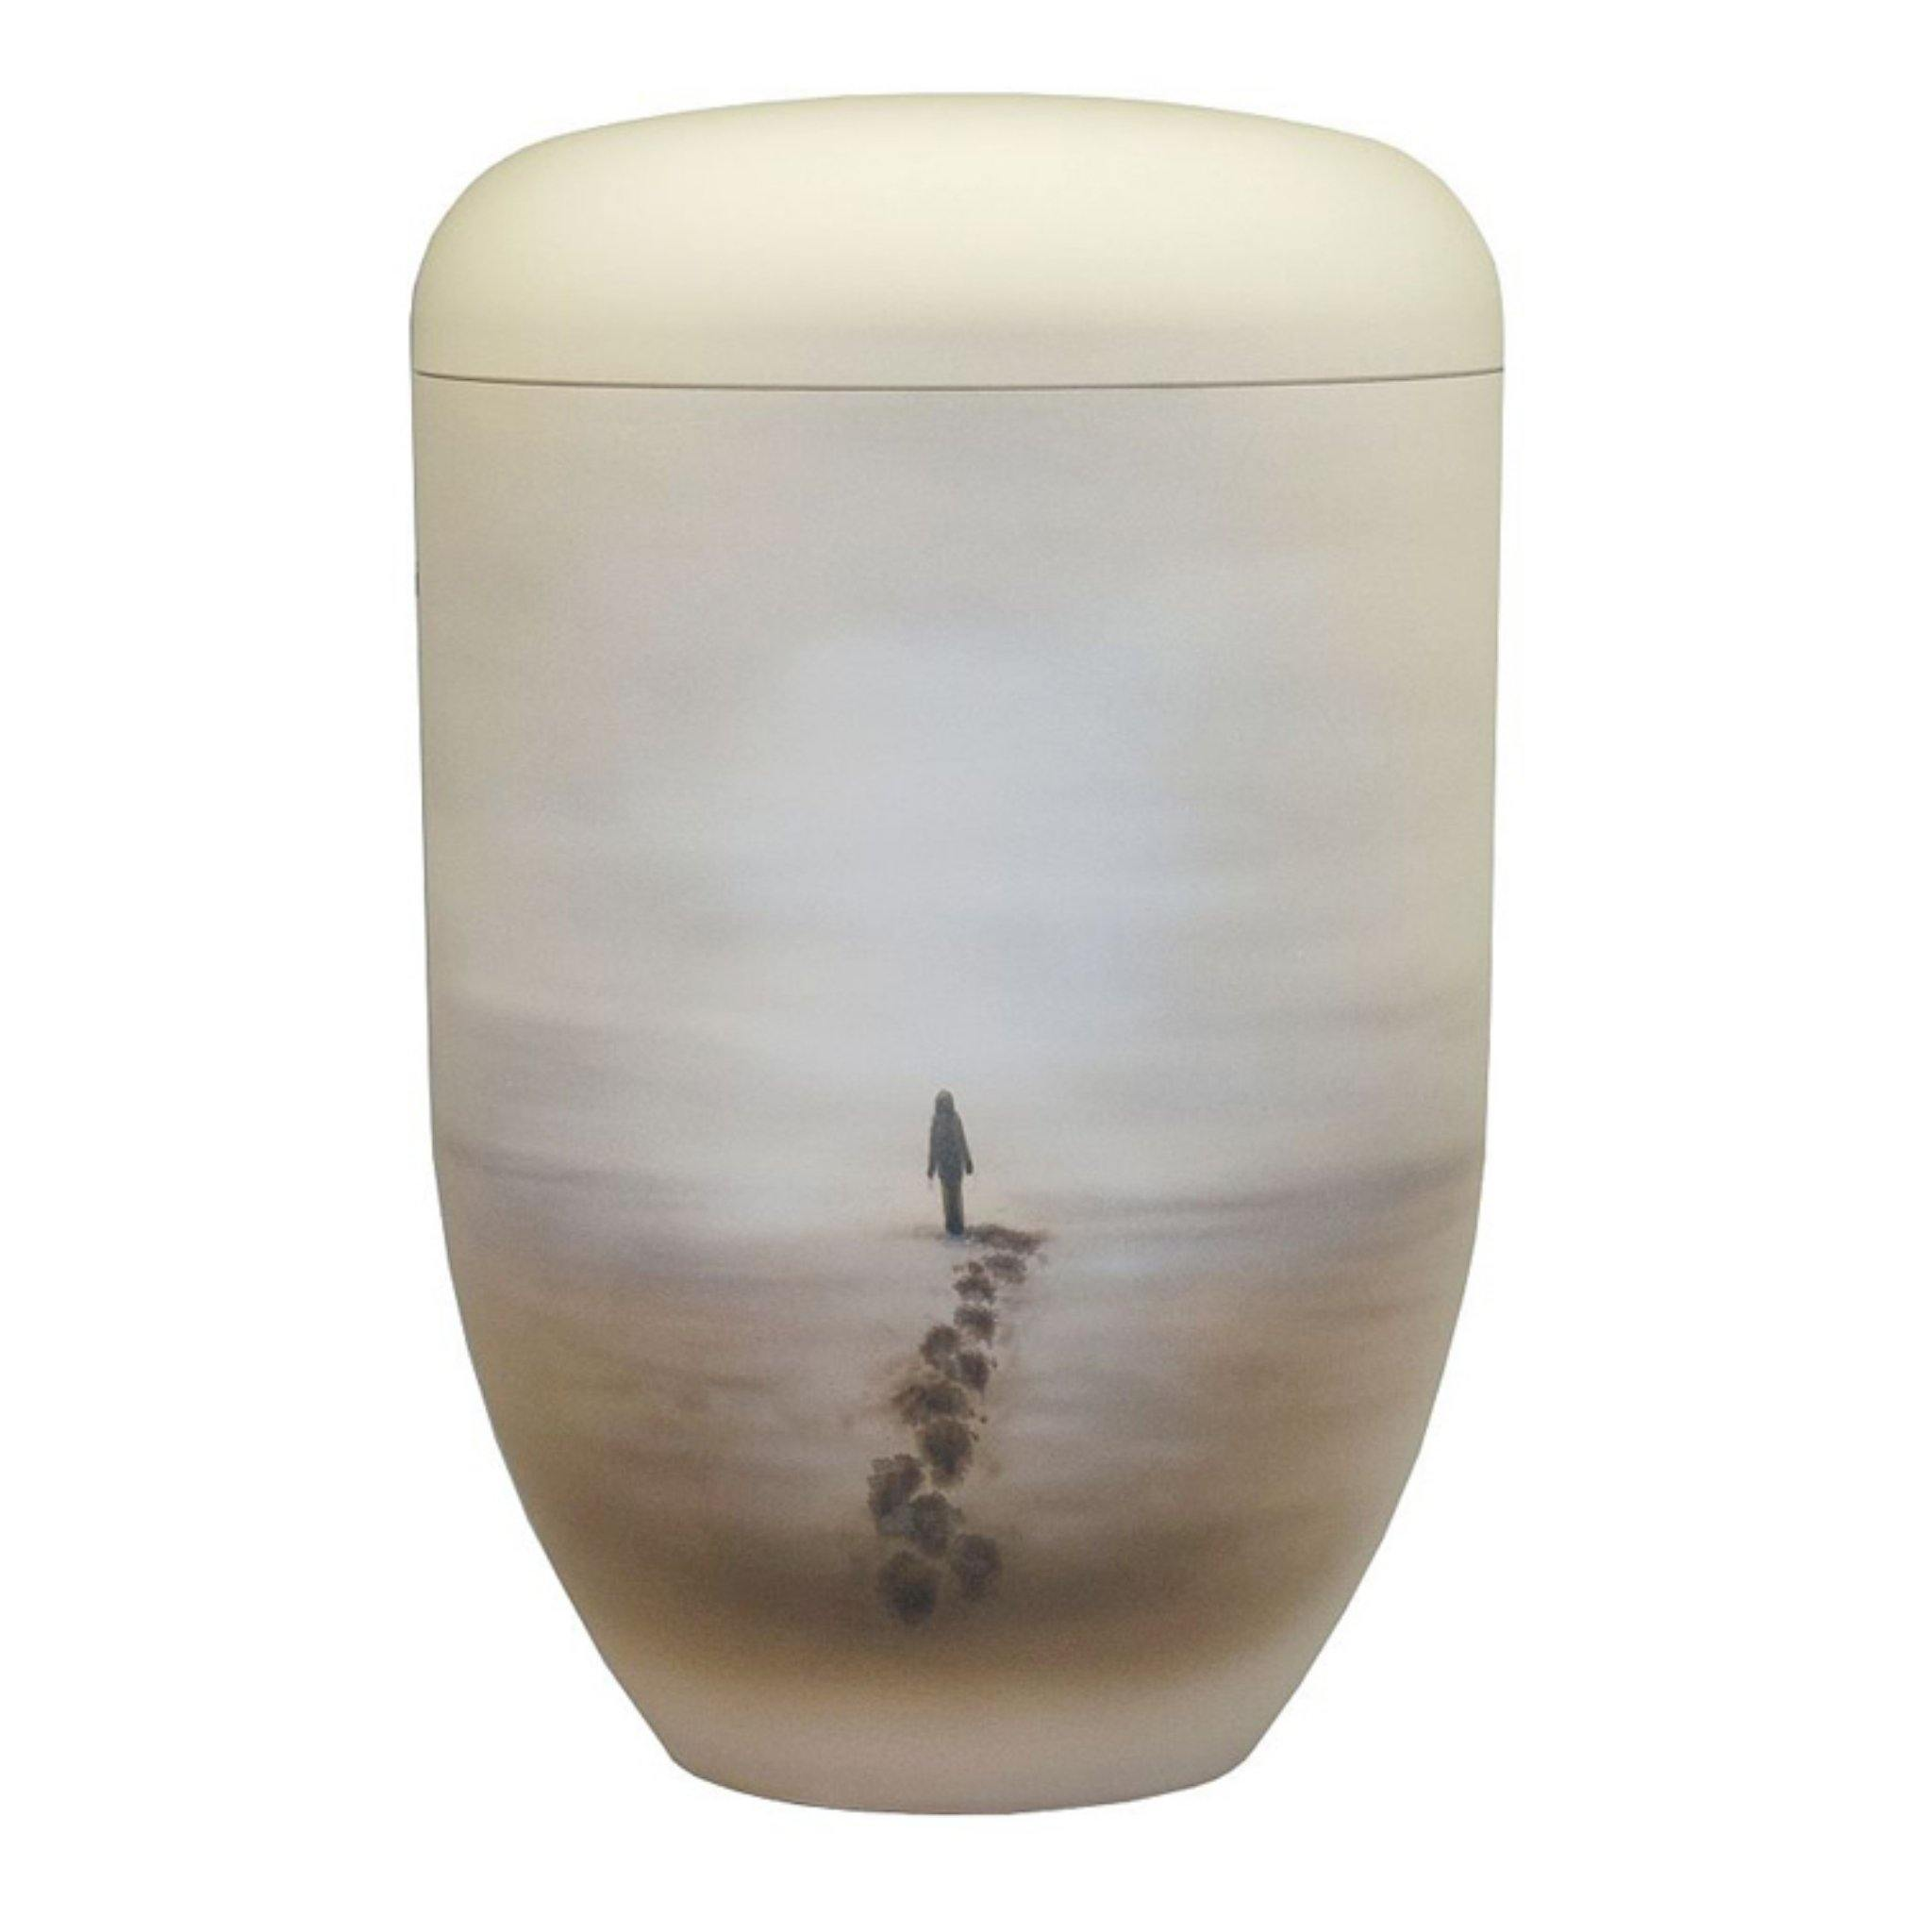 Polperro Farewell Footprints Handpainted Bio Cremation Ashes urn - Urns UK